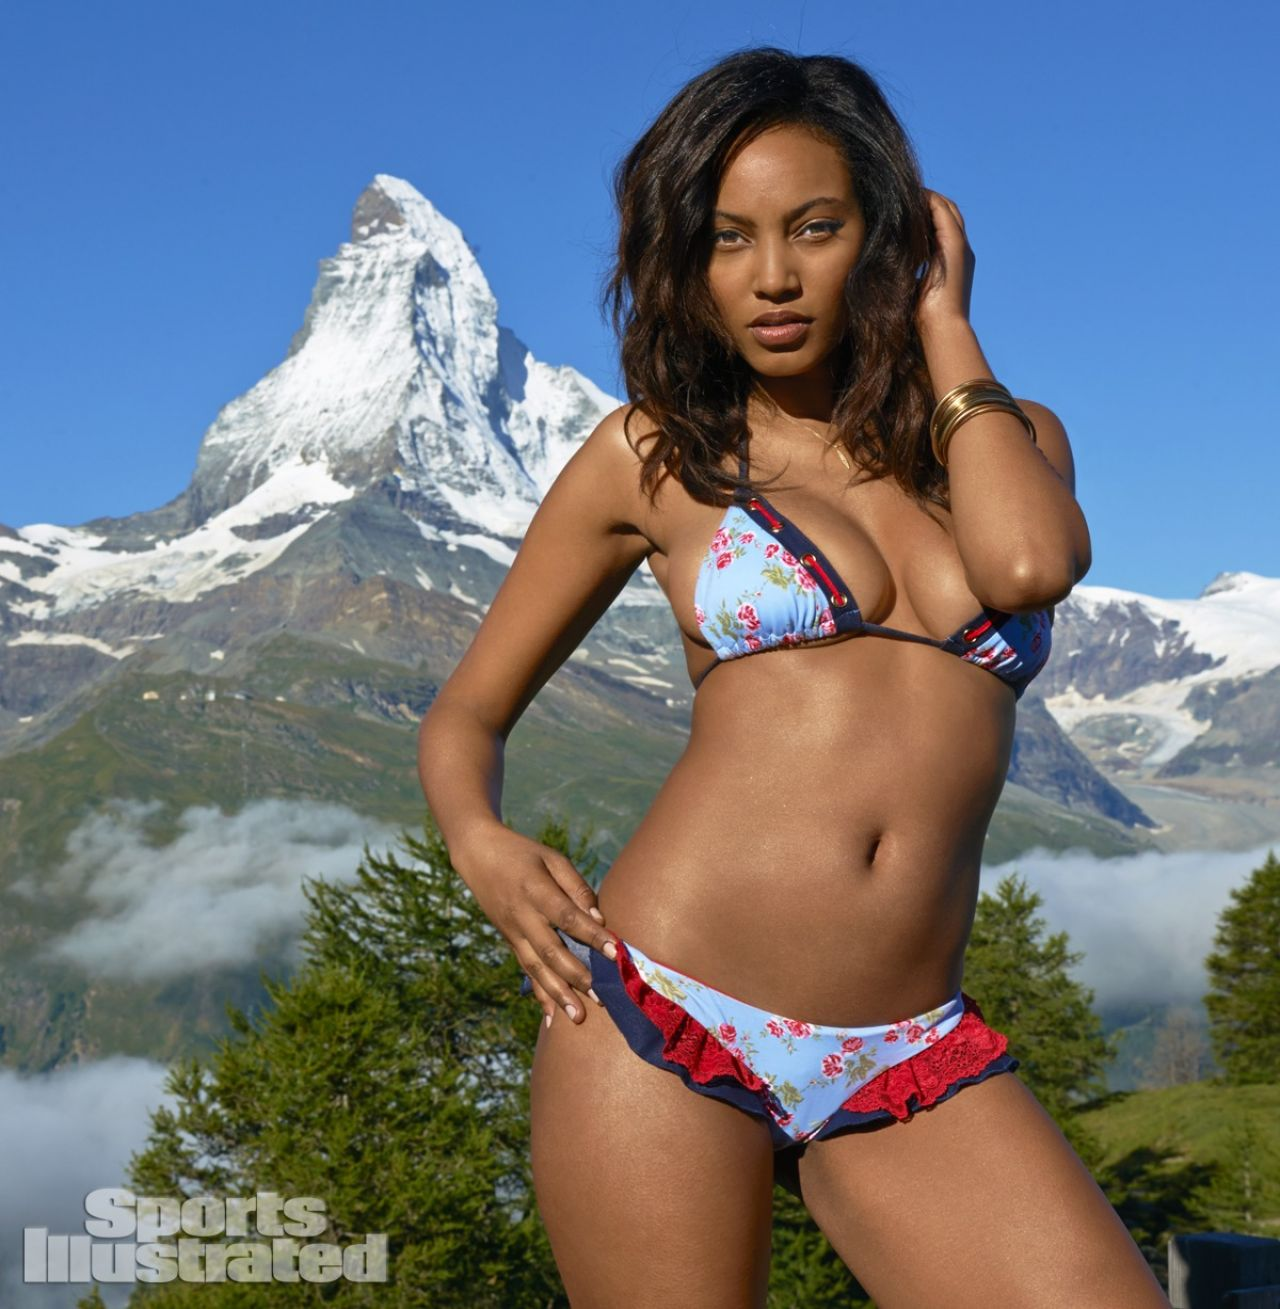 ��� ����� ������� ��� ���� sports illustrated 2014